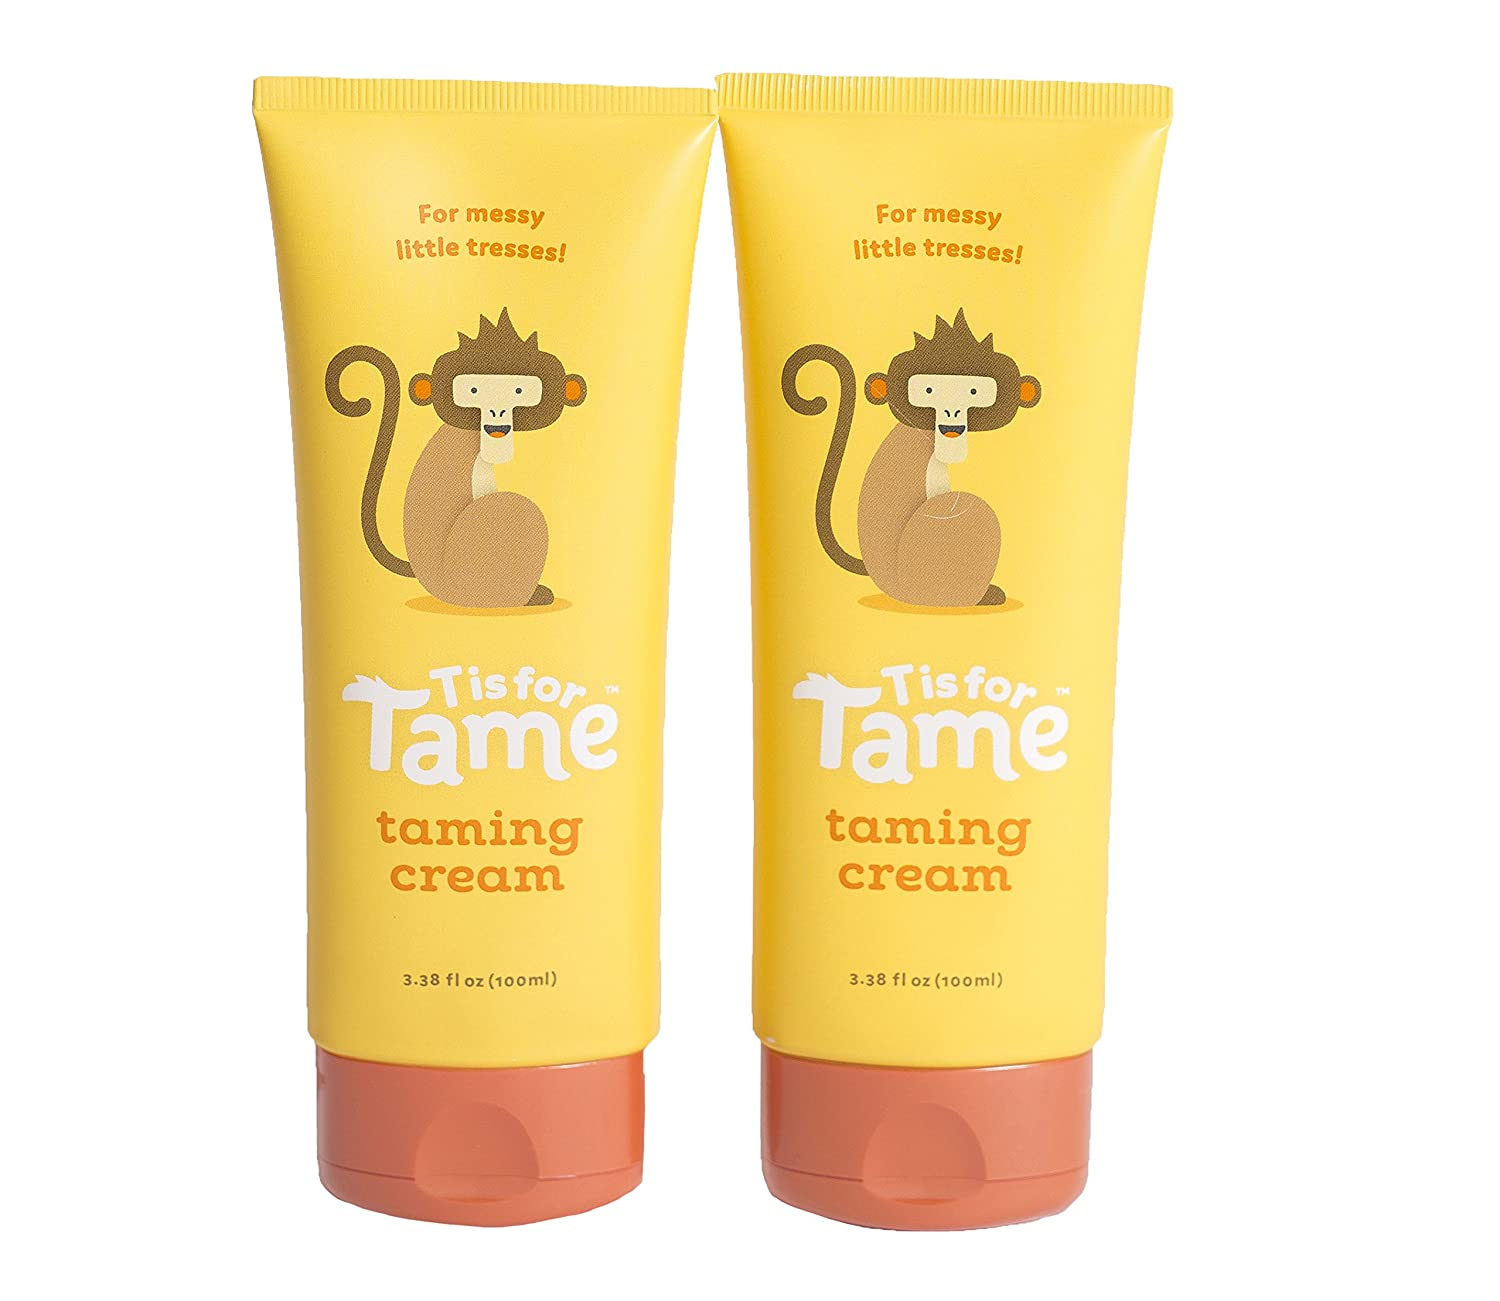 Hair Taming Matte Cream | Babies, Toddlers & Up | Safe & Effective | Coconut & Jojoba Oil | Not Greasy, Stiff, or Sticky T is for Tame